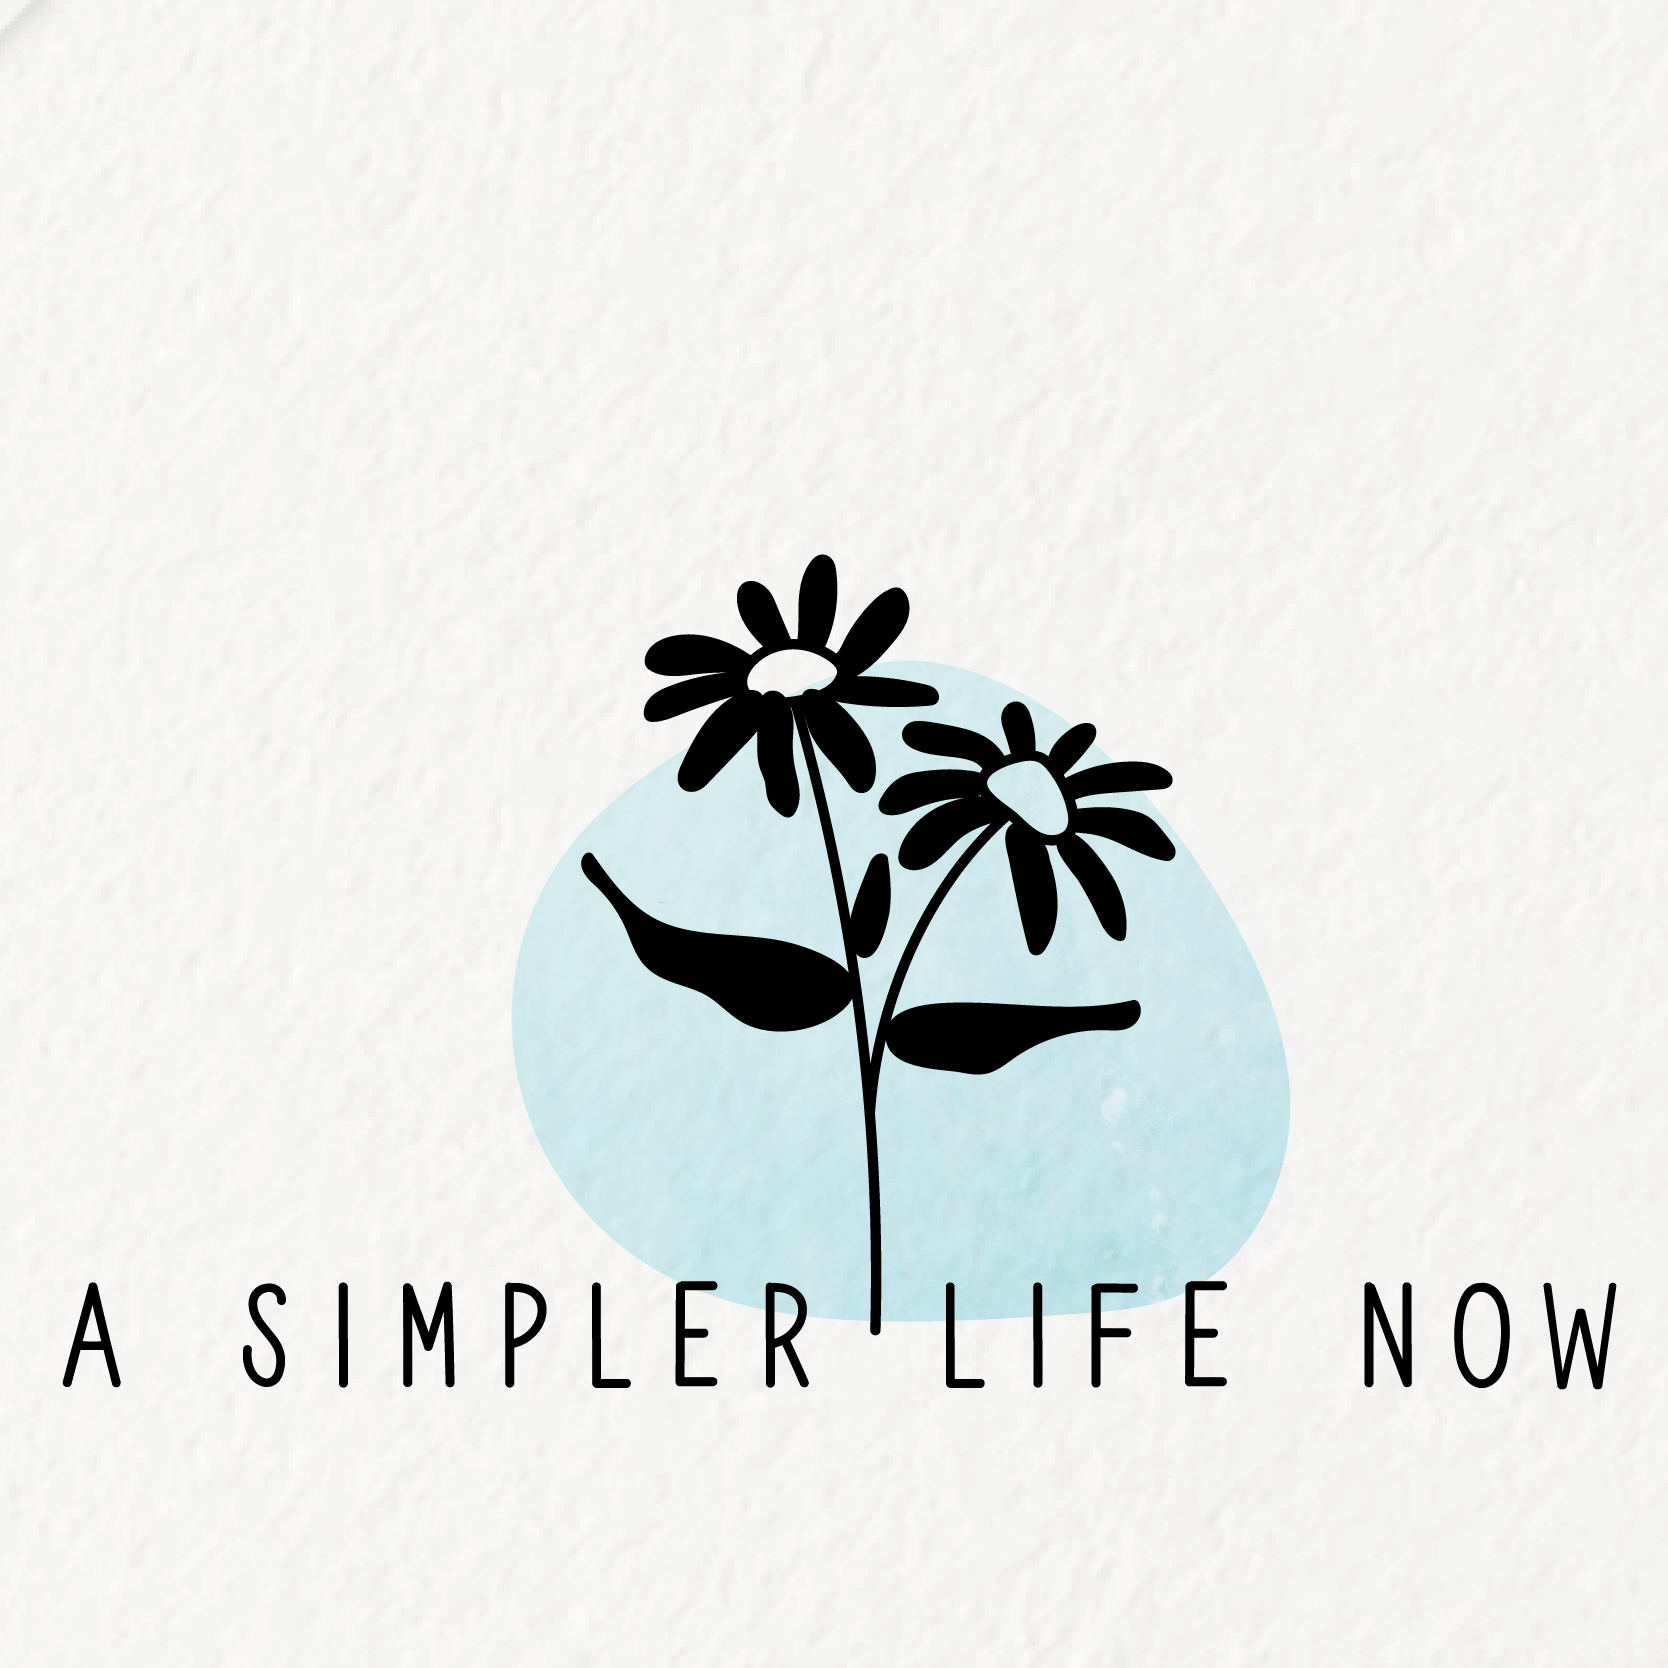 a-simpler-life-now.png